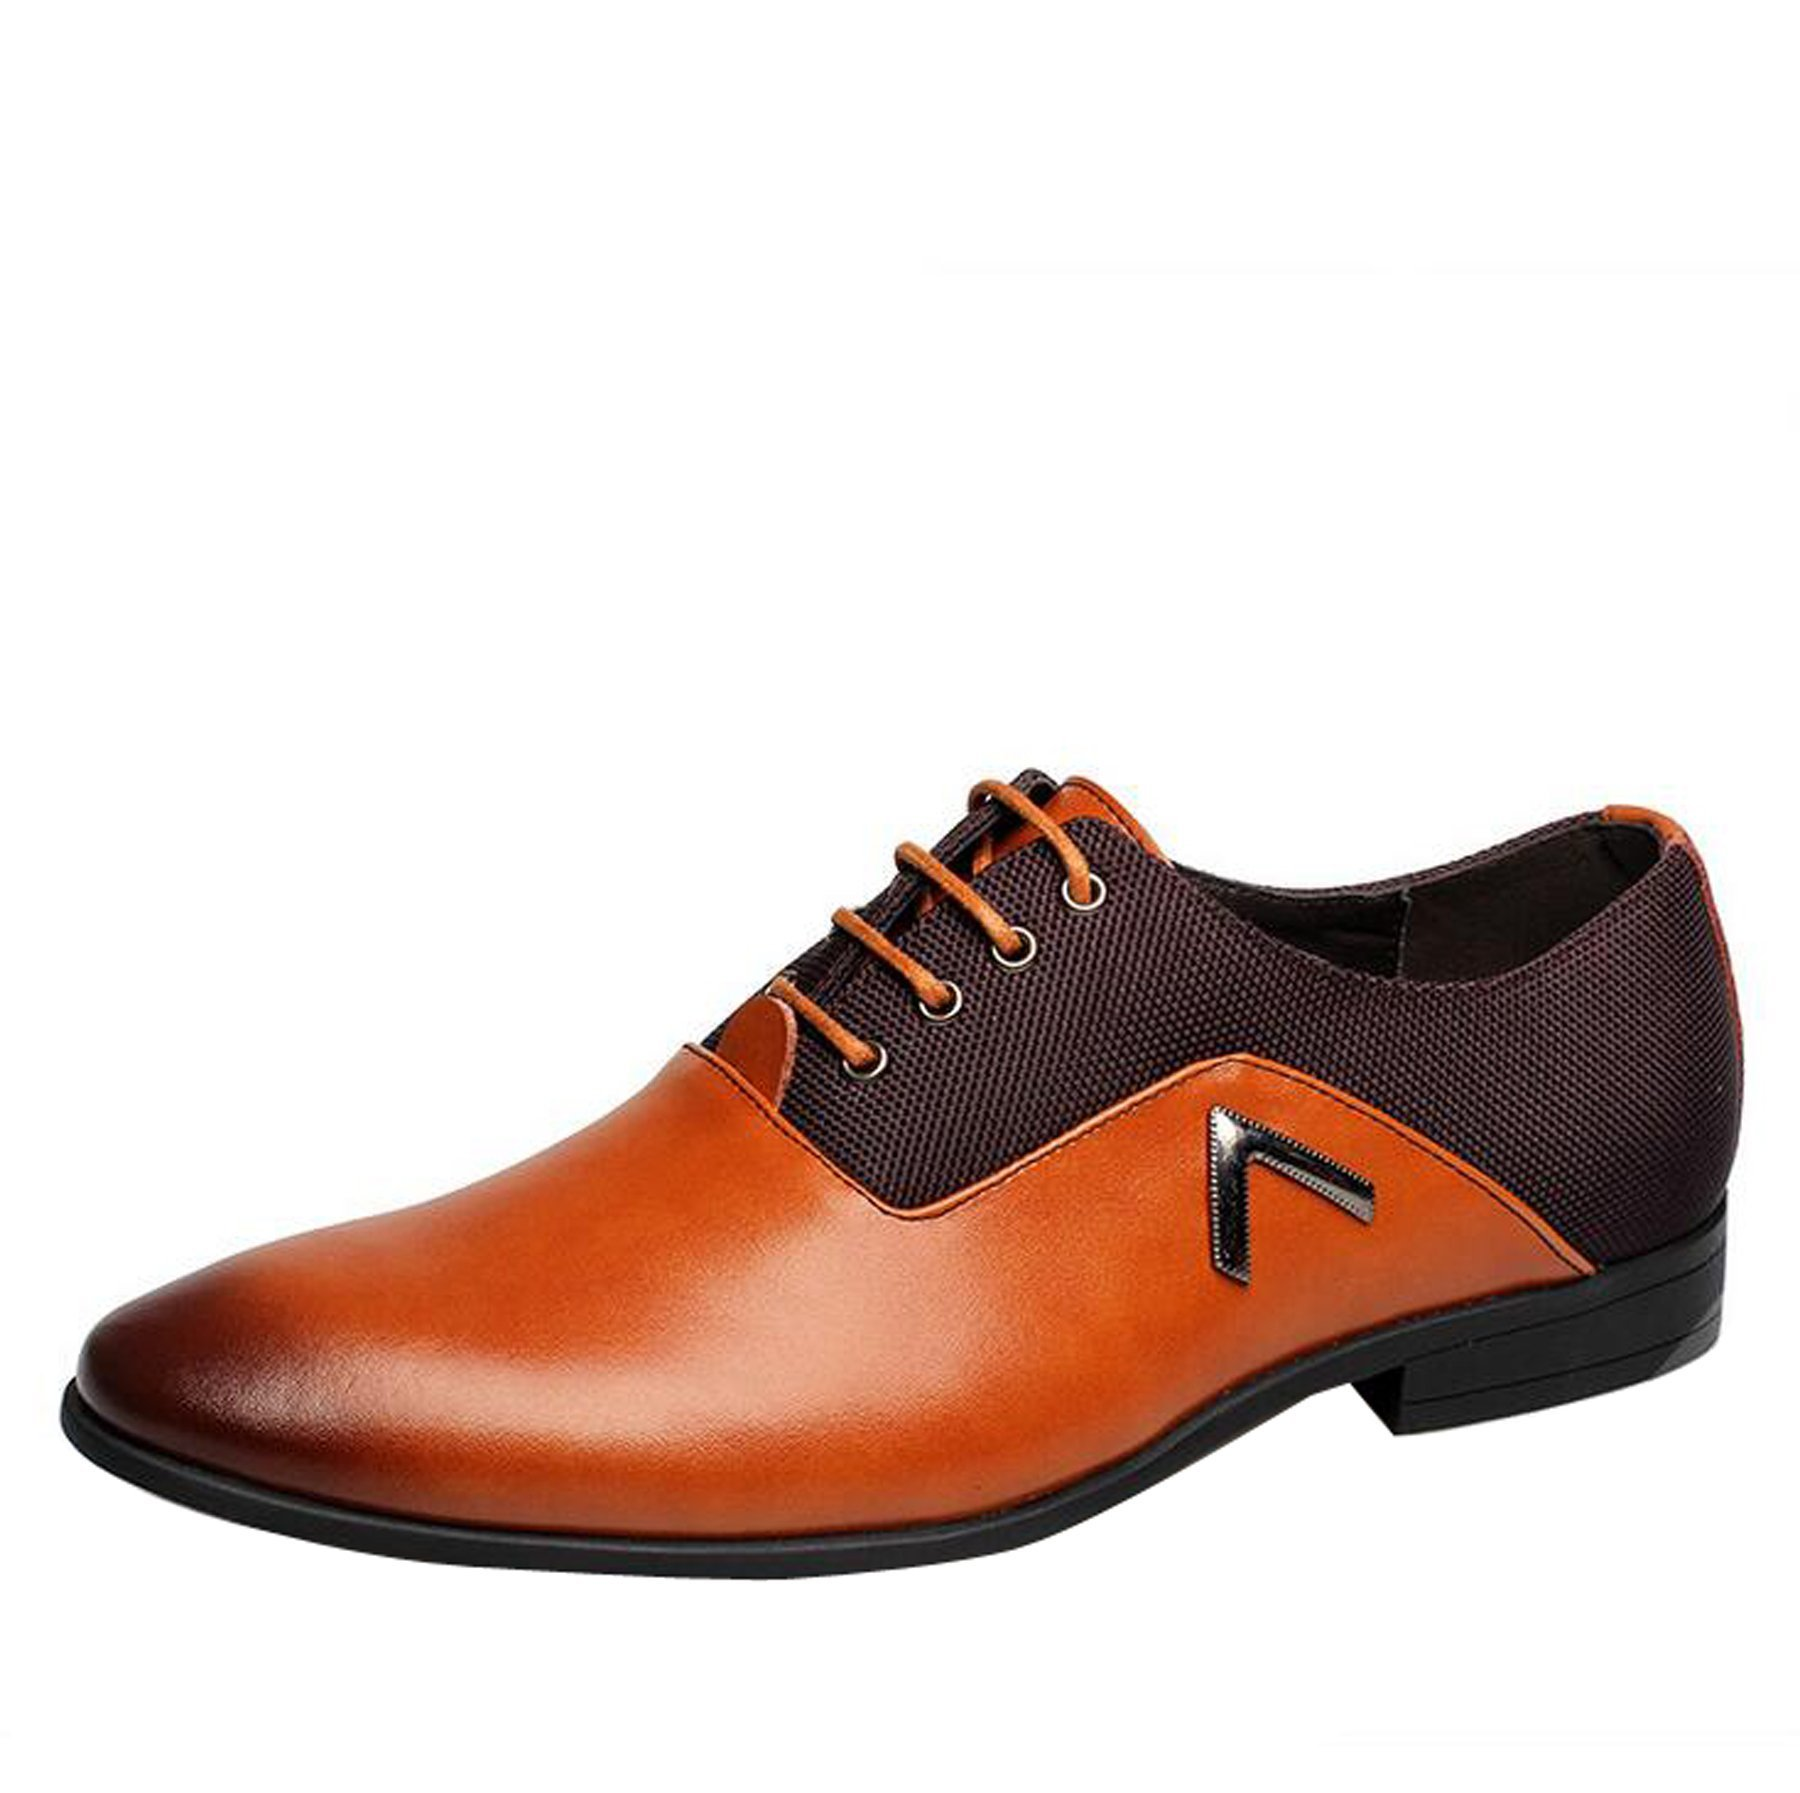 Men Pointed Toe Business Dress Formal Leather Shoes Flat Oxfords Loafers Slip On Yellow by Gaorui